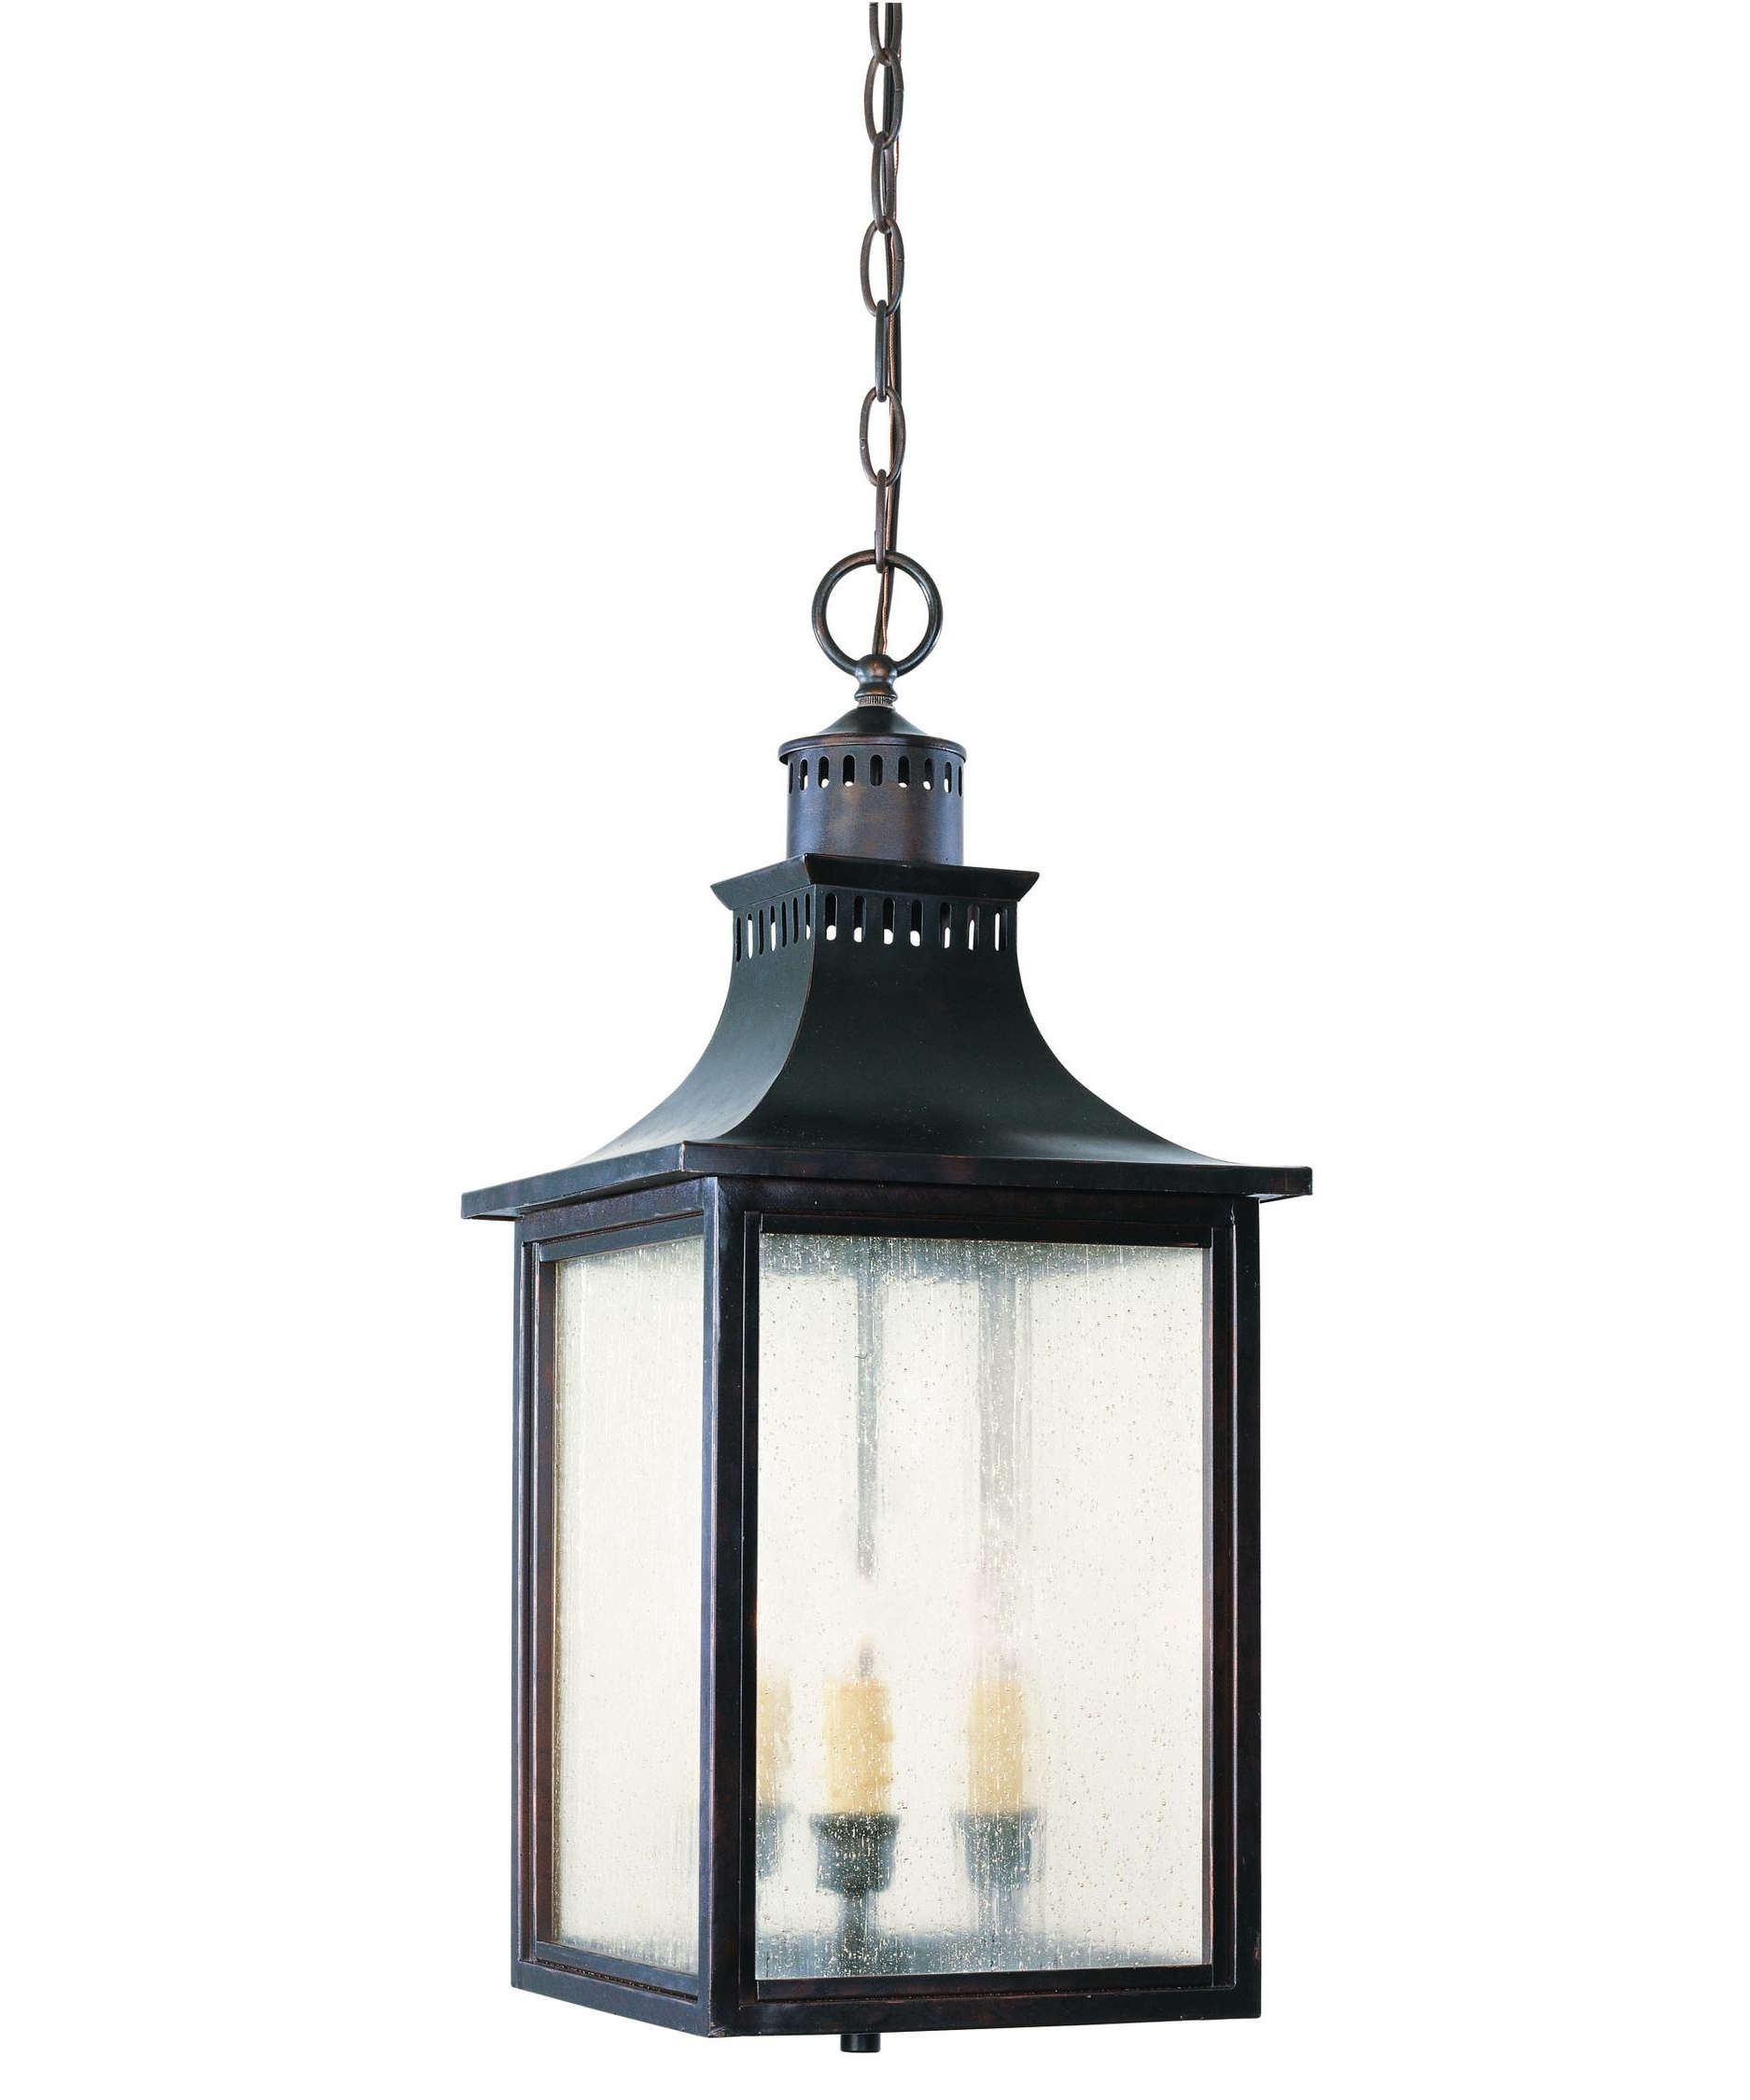 Widely Used Outdoor Hanging Lanterns Pertaining To Savoy House 5 256 Monte Grande 10 Inch Wide 3 Light Outdoor Hanging (View 4 of 20)